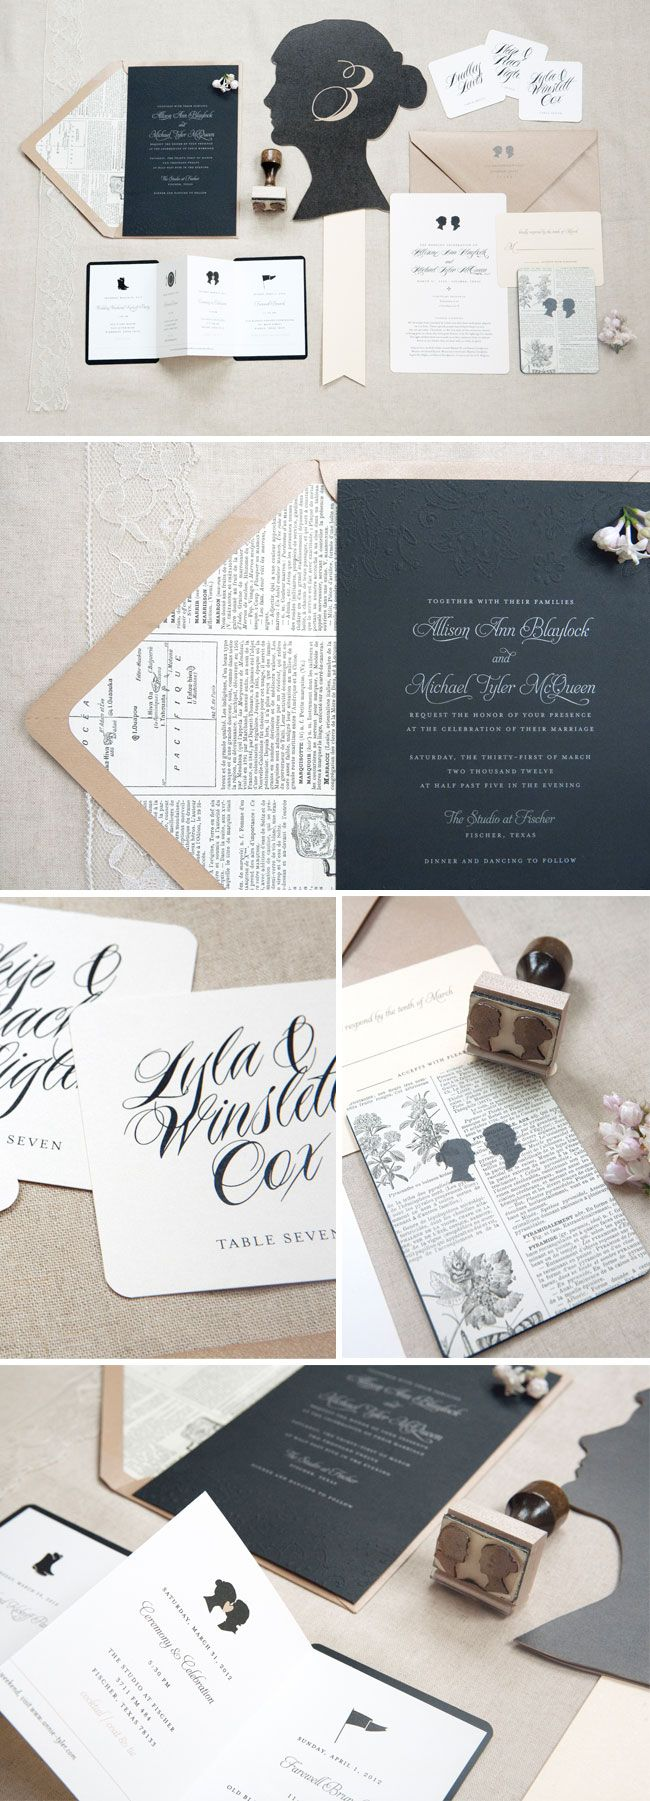 avery address labels wedding invitations%0A The folding invitation is brilliant  Vintage Parisianmeetsglam wedding  suite with silhouettes